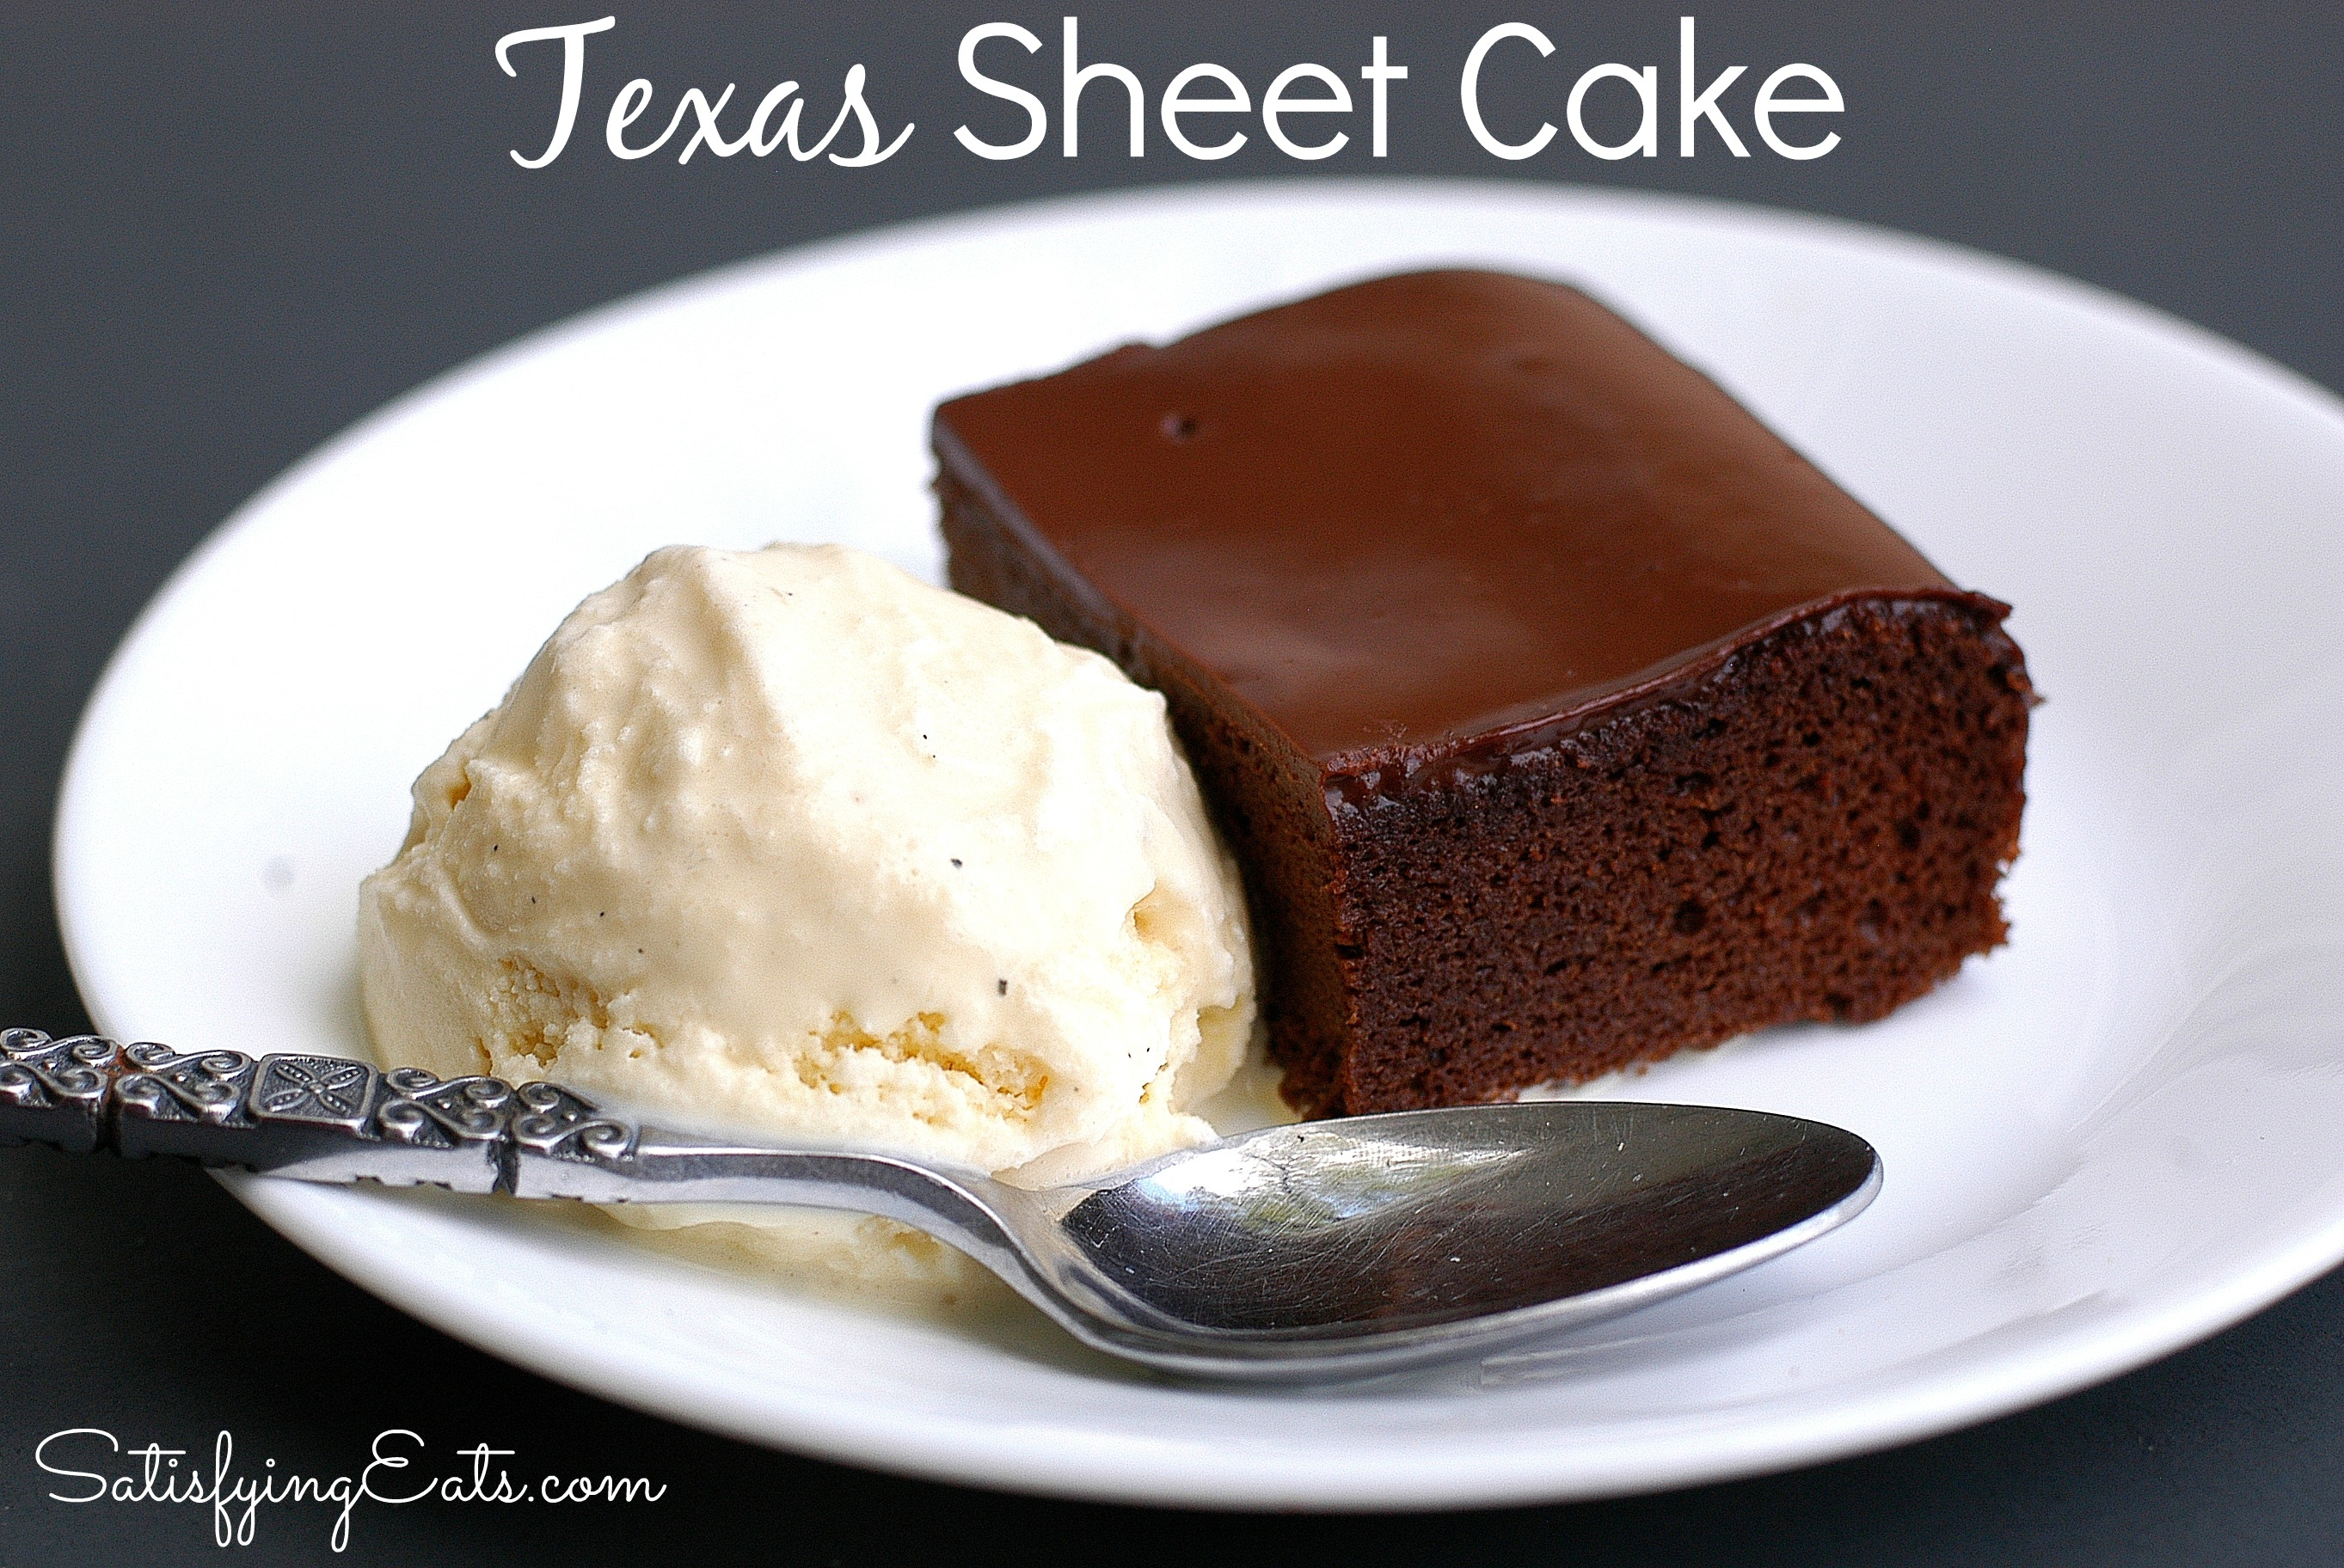 Orange Texas Sheet Cake Recipe